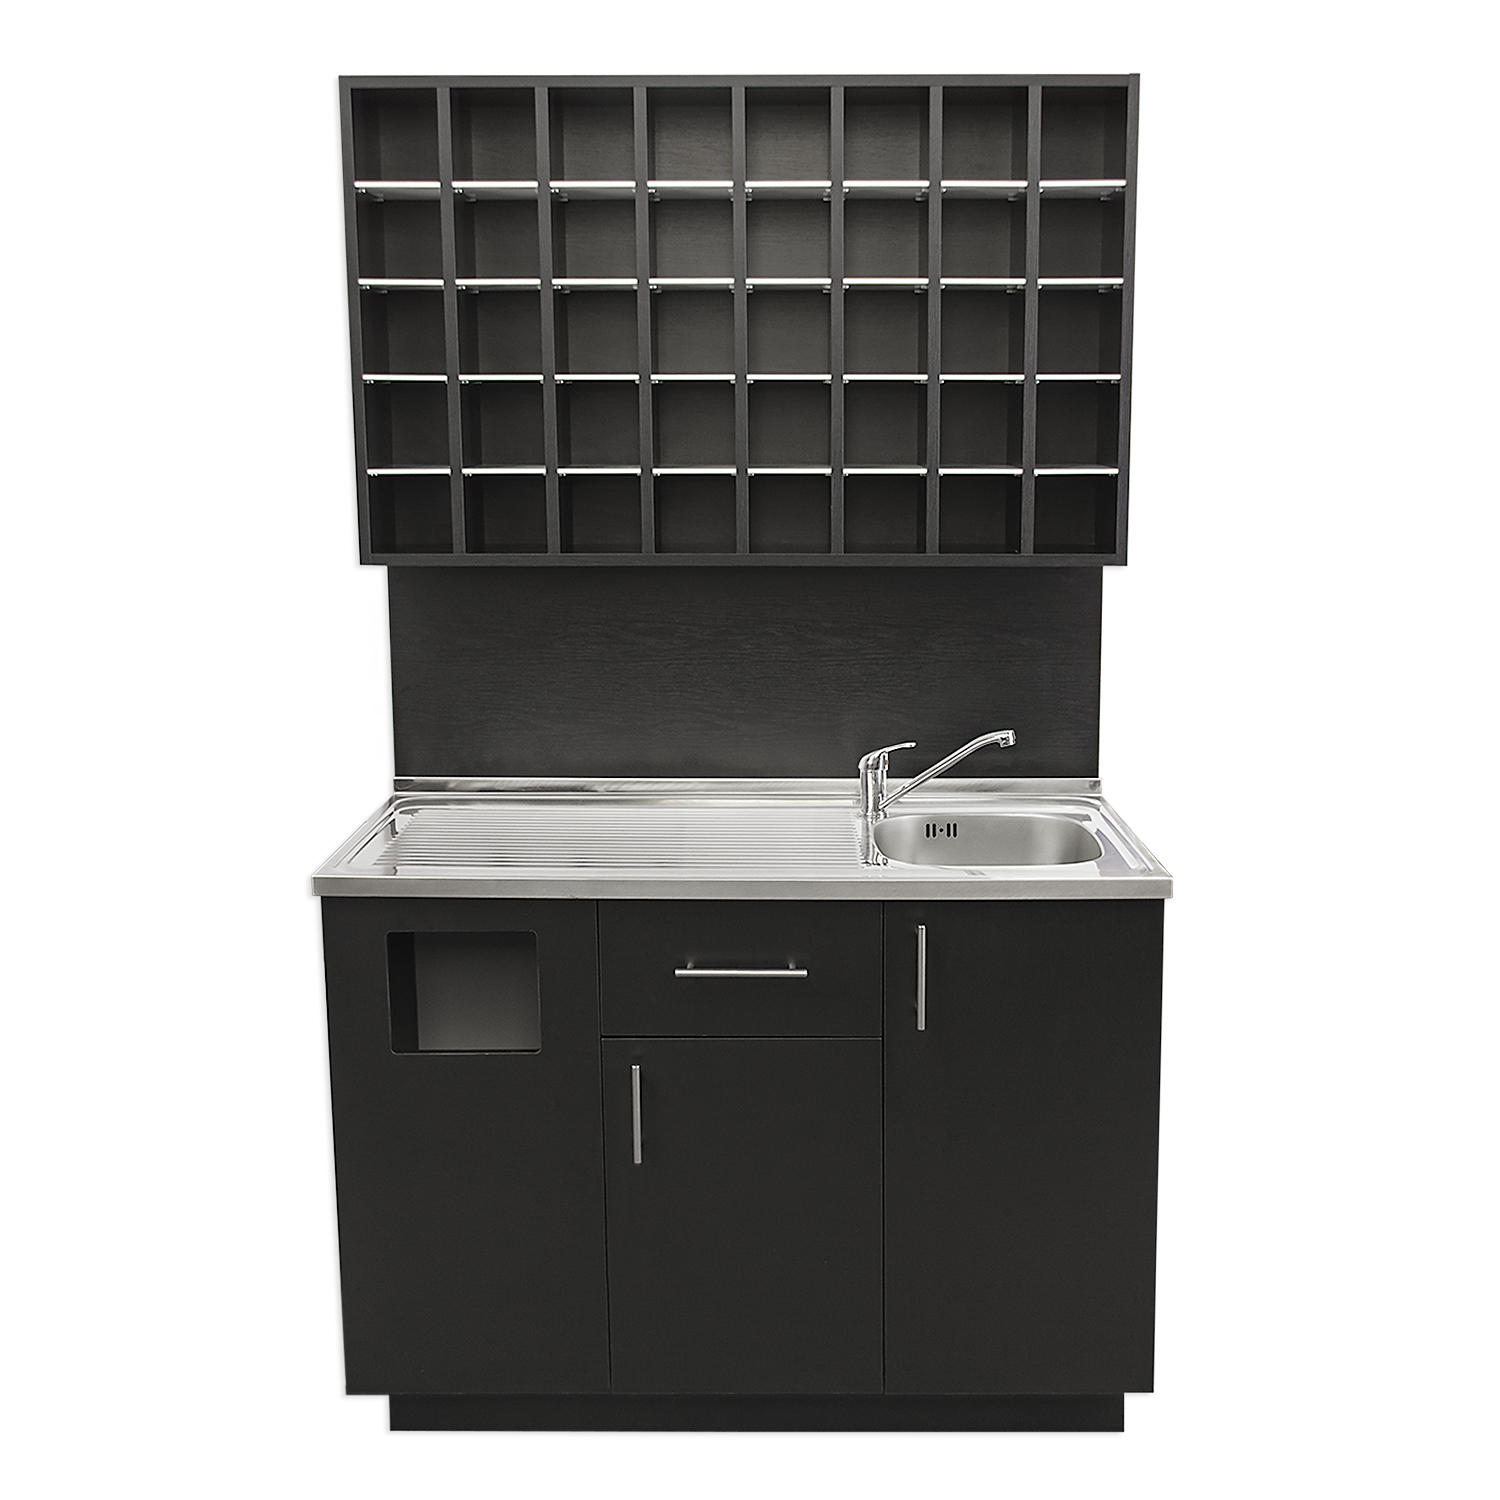 4' Color Mixing Station with Sink and Stainless Steel Counter alternative product image 4